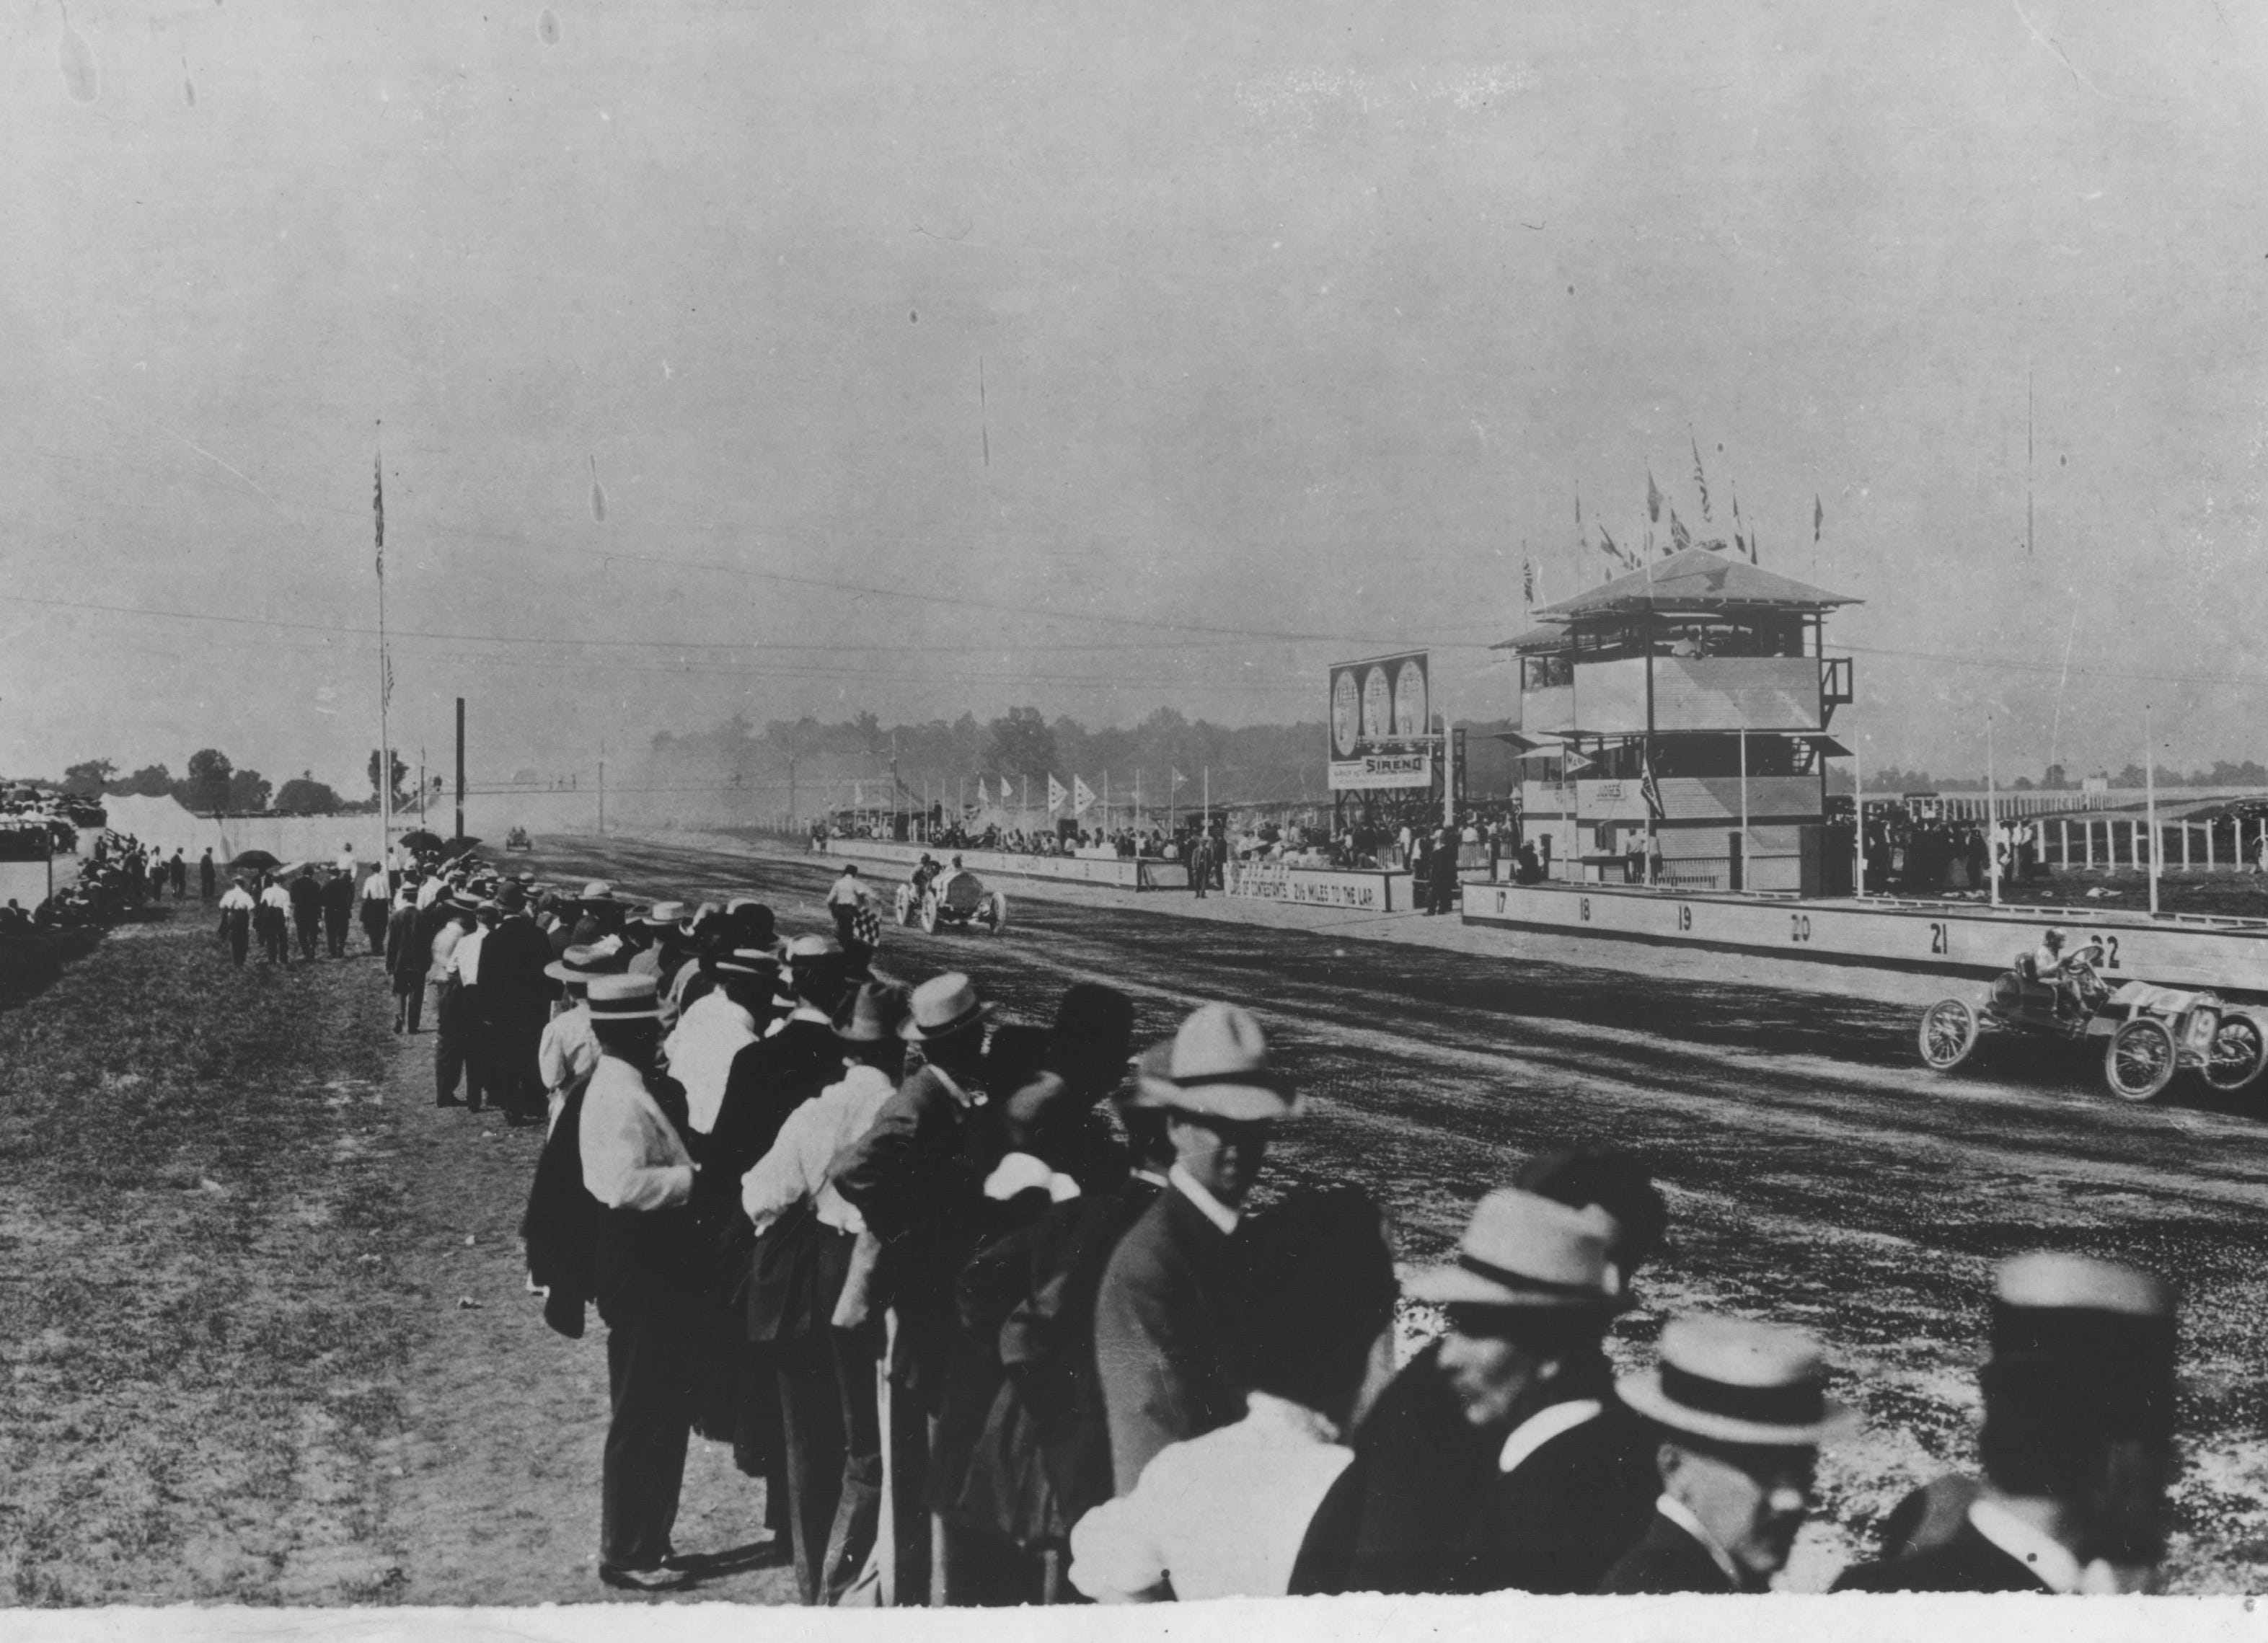 16,000 people witnessed opening races at the Indianapolis Motor Speedway on August 19, 1909.